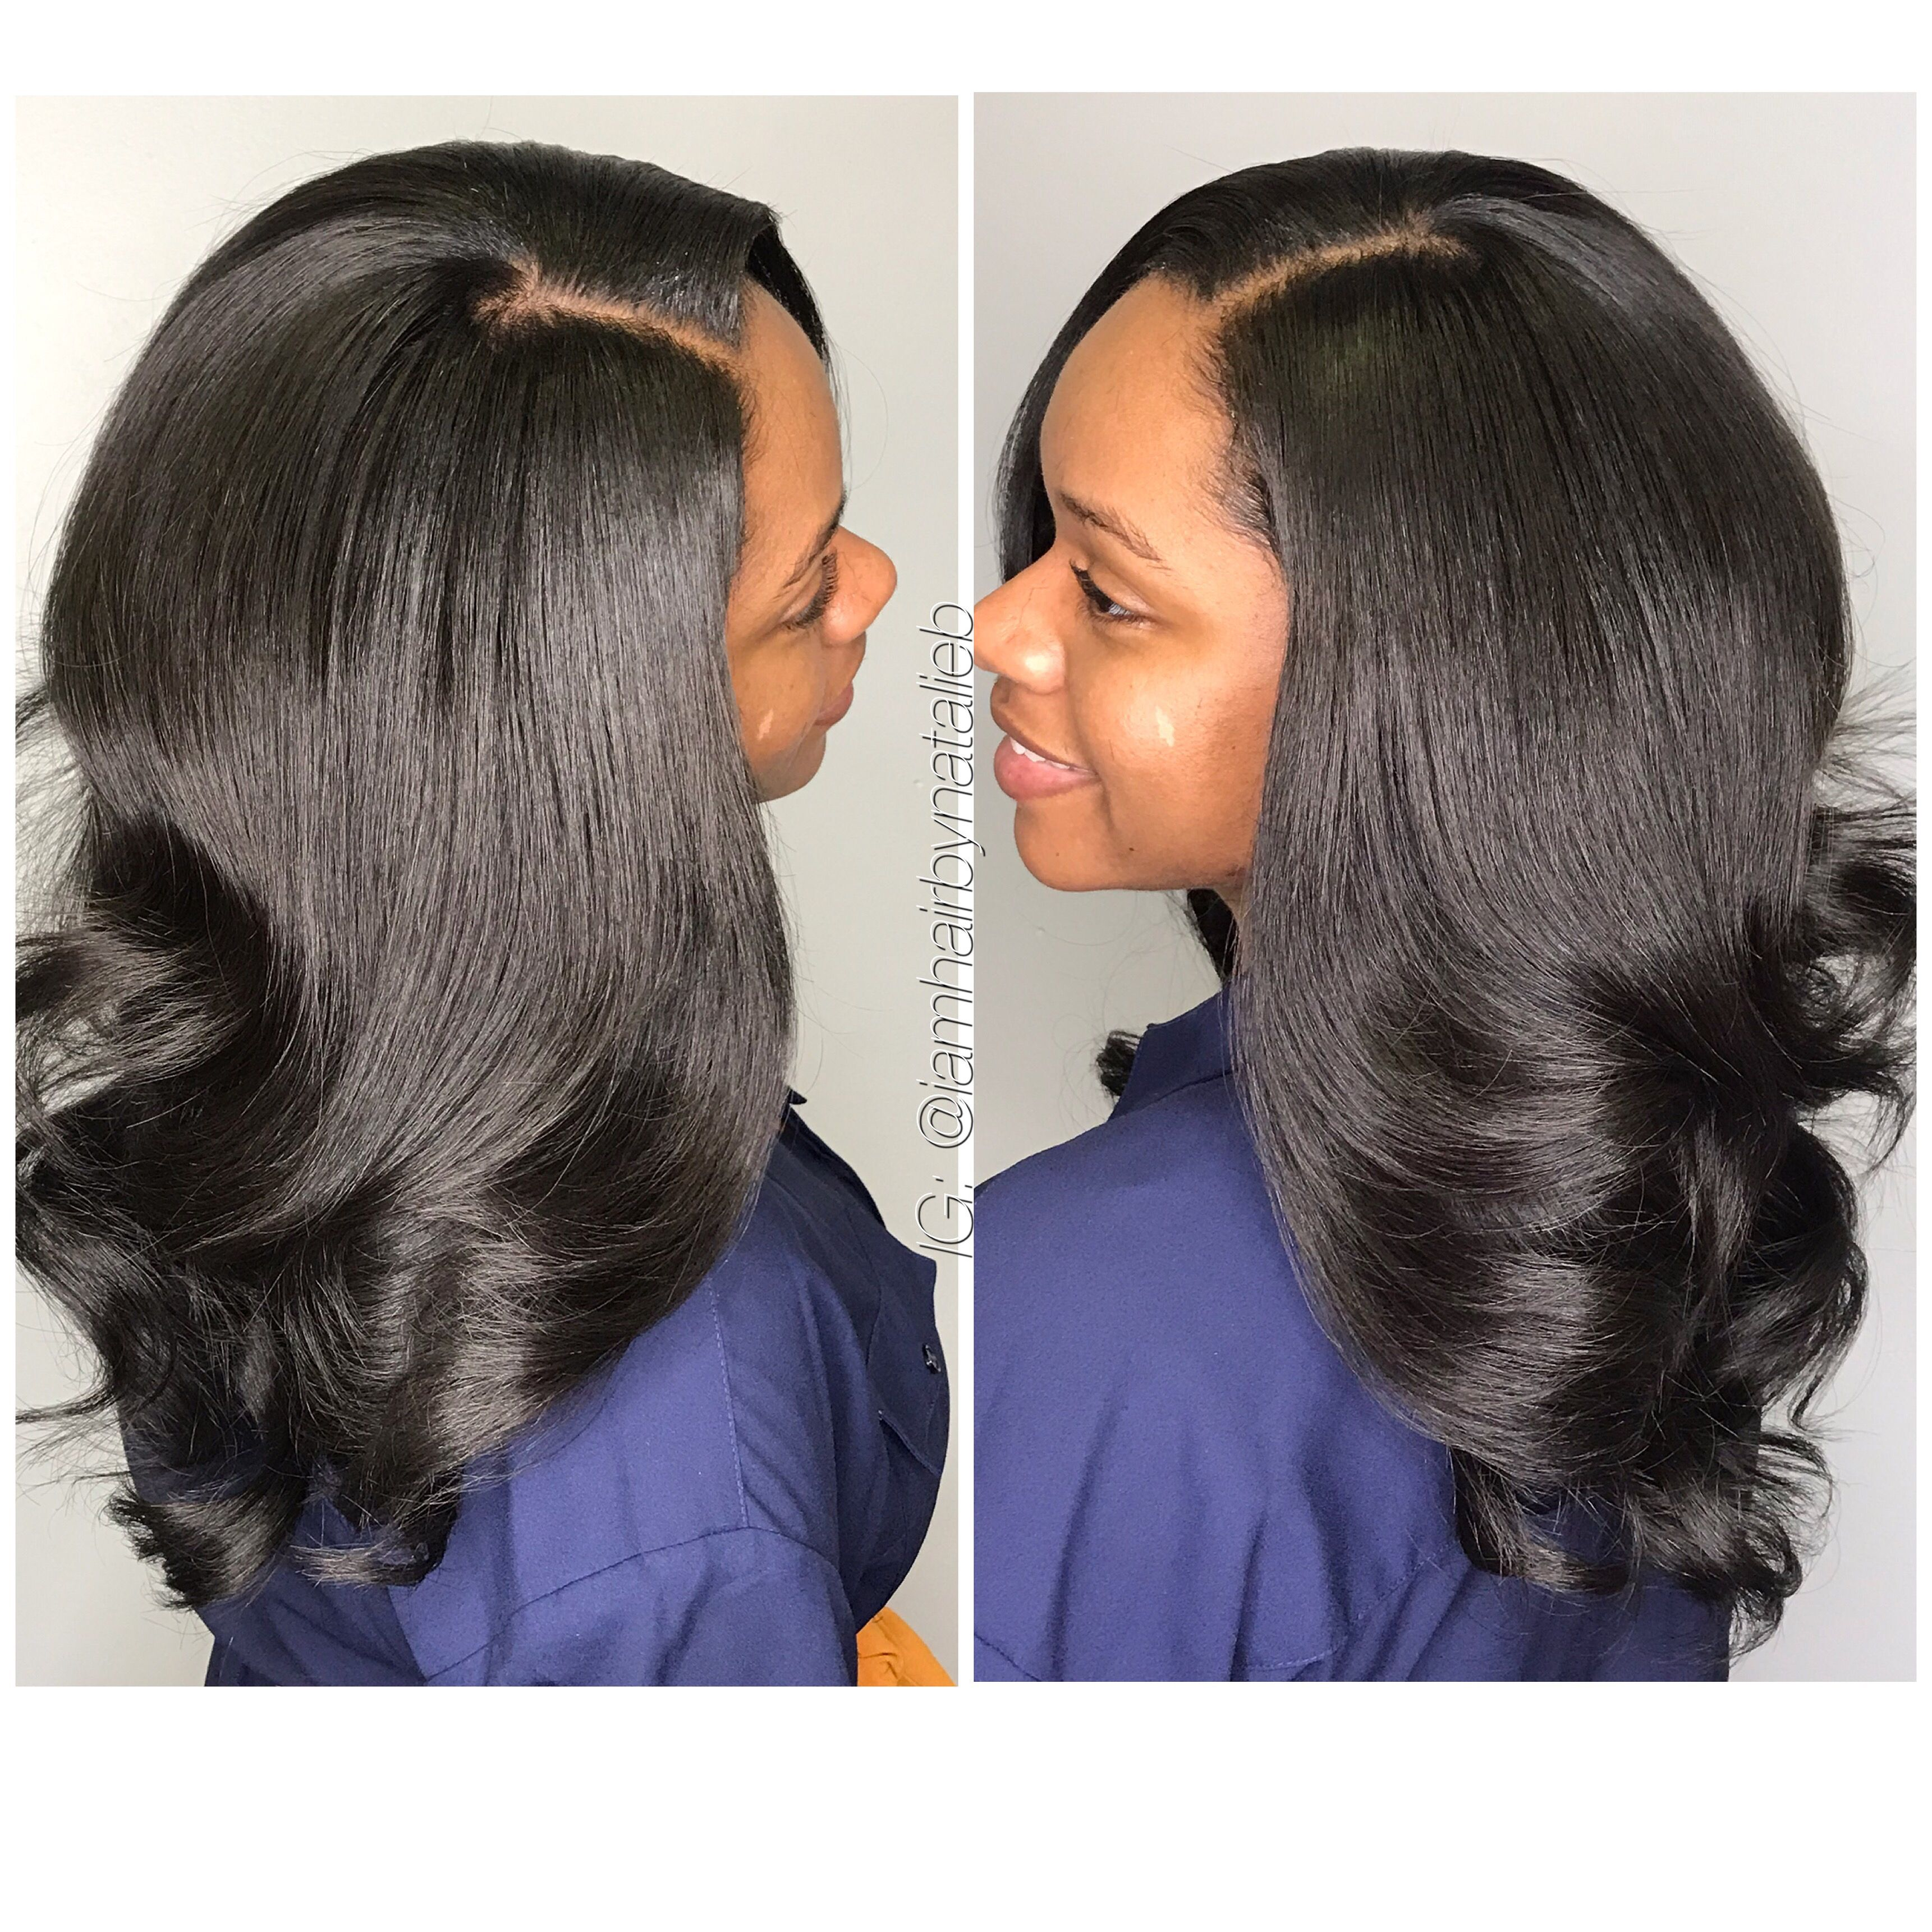 I Create Sew In Hair Weave Styles That Looks Just Like Your Own Real Hair Natalie B Traditional Sew In By Nata Weave Hairstyles Hairstyle Silk Press